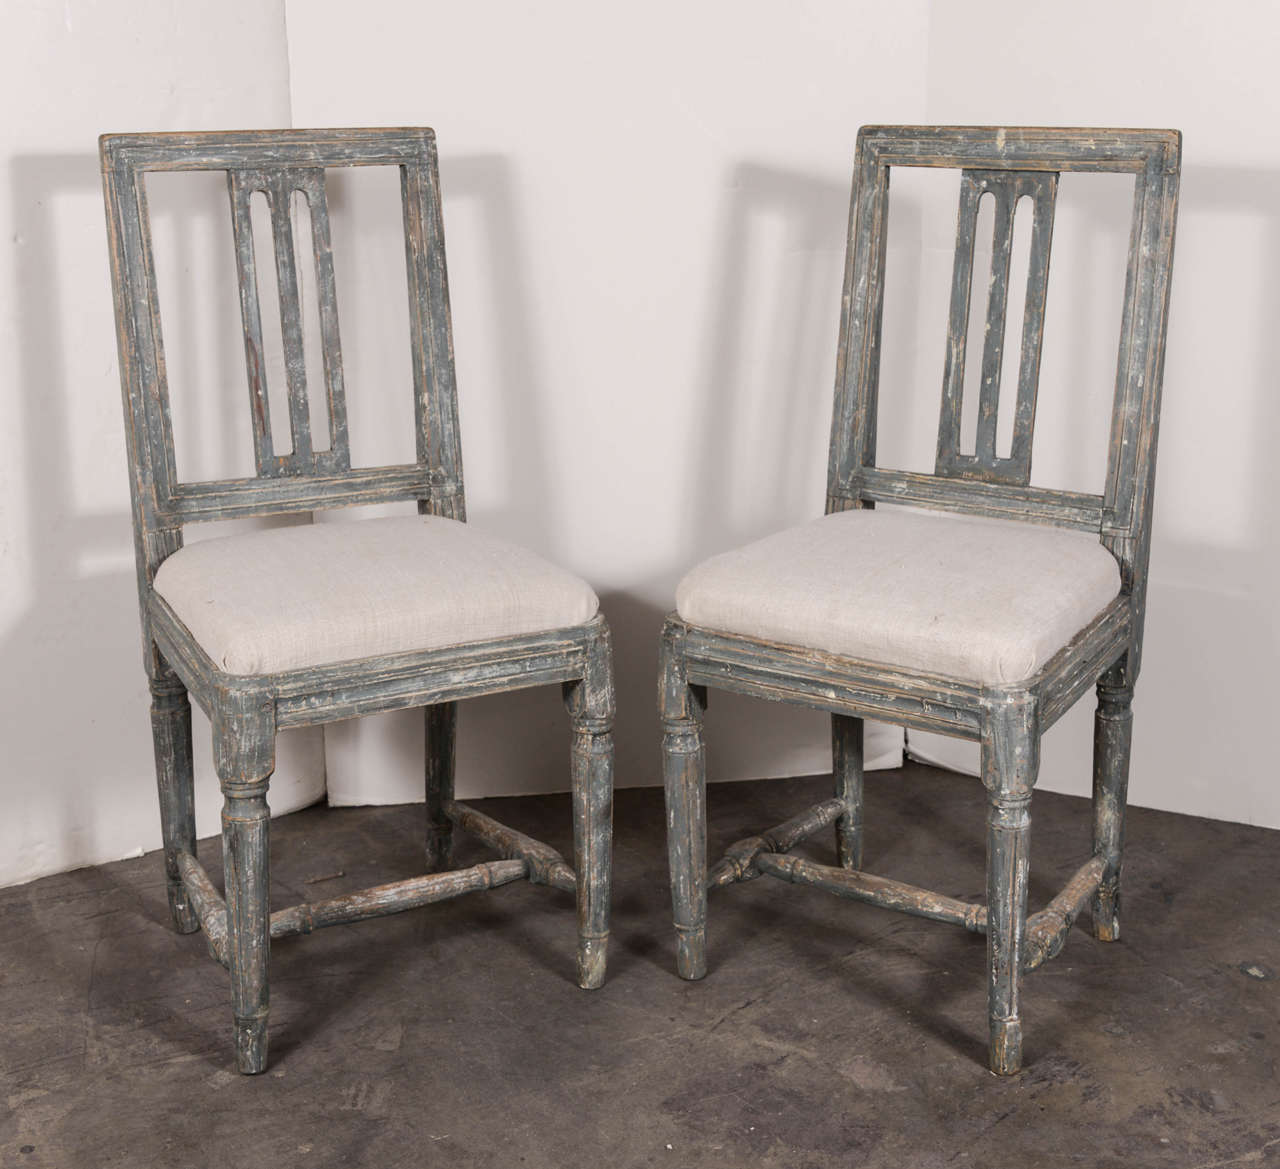 Swedish Gustavian Blue Painted Slat Back Dining Chairs from circa ...